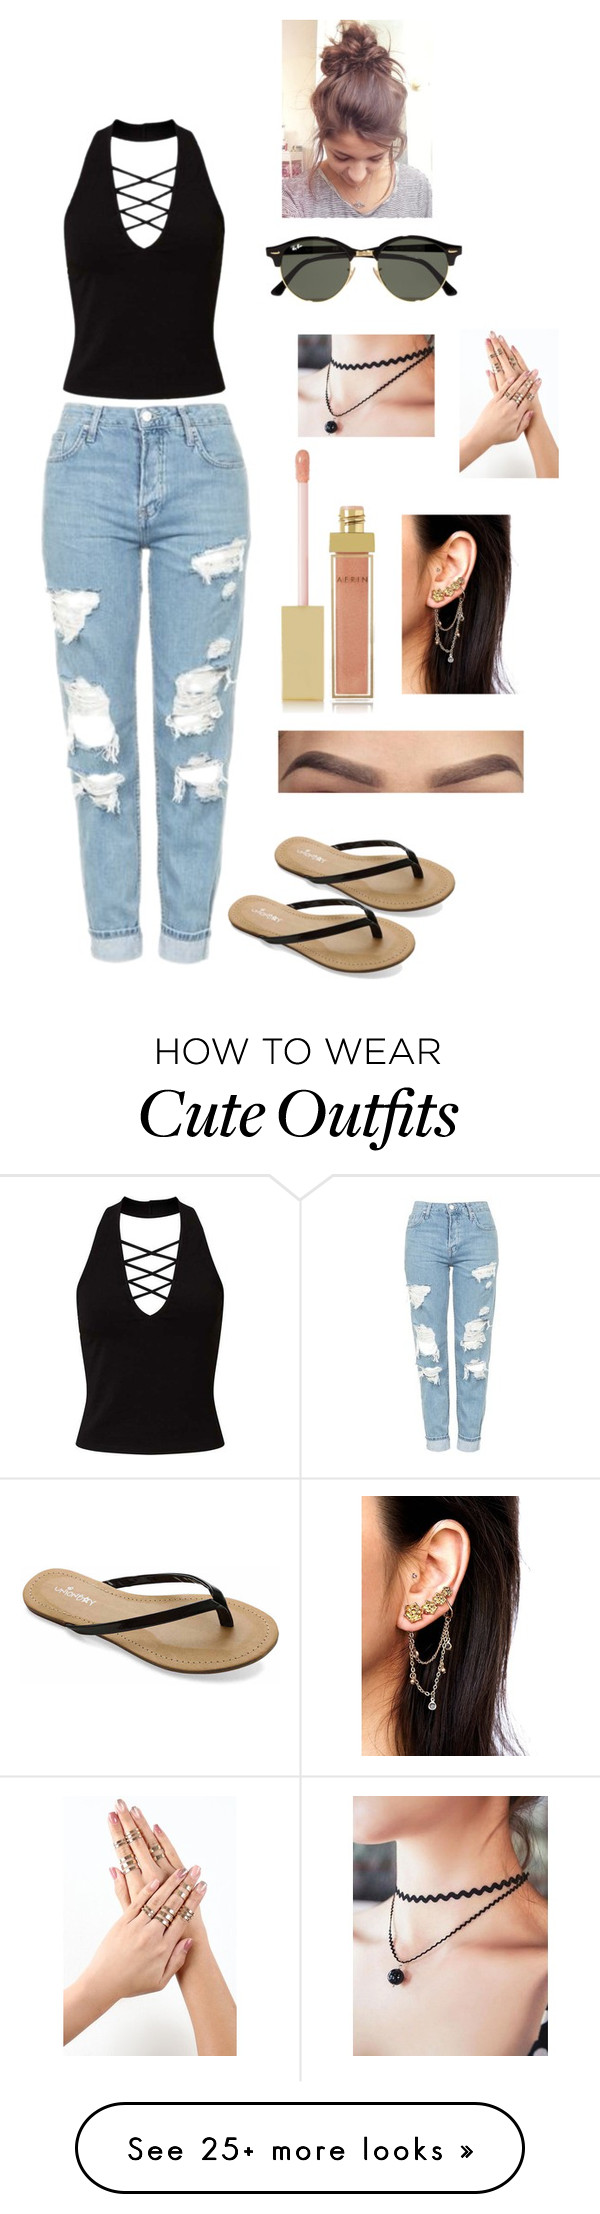 """""""My go to outfit this entire summer"""" by vanessaarce on Polyvore featuring Miss Selfridge, Topshop, UNIONBAY, Ray-Ban, AERIN and Free People"""